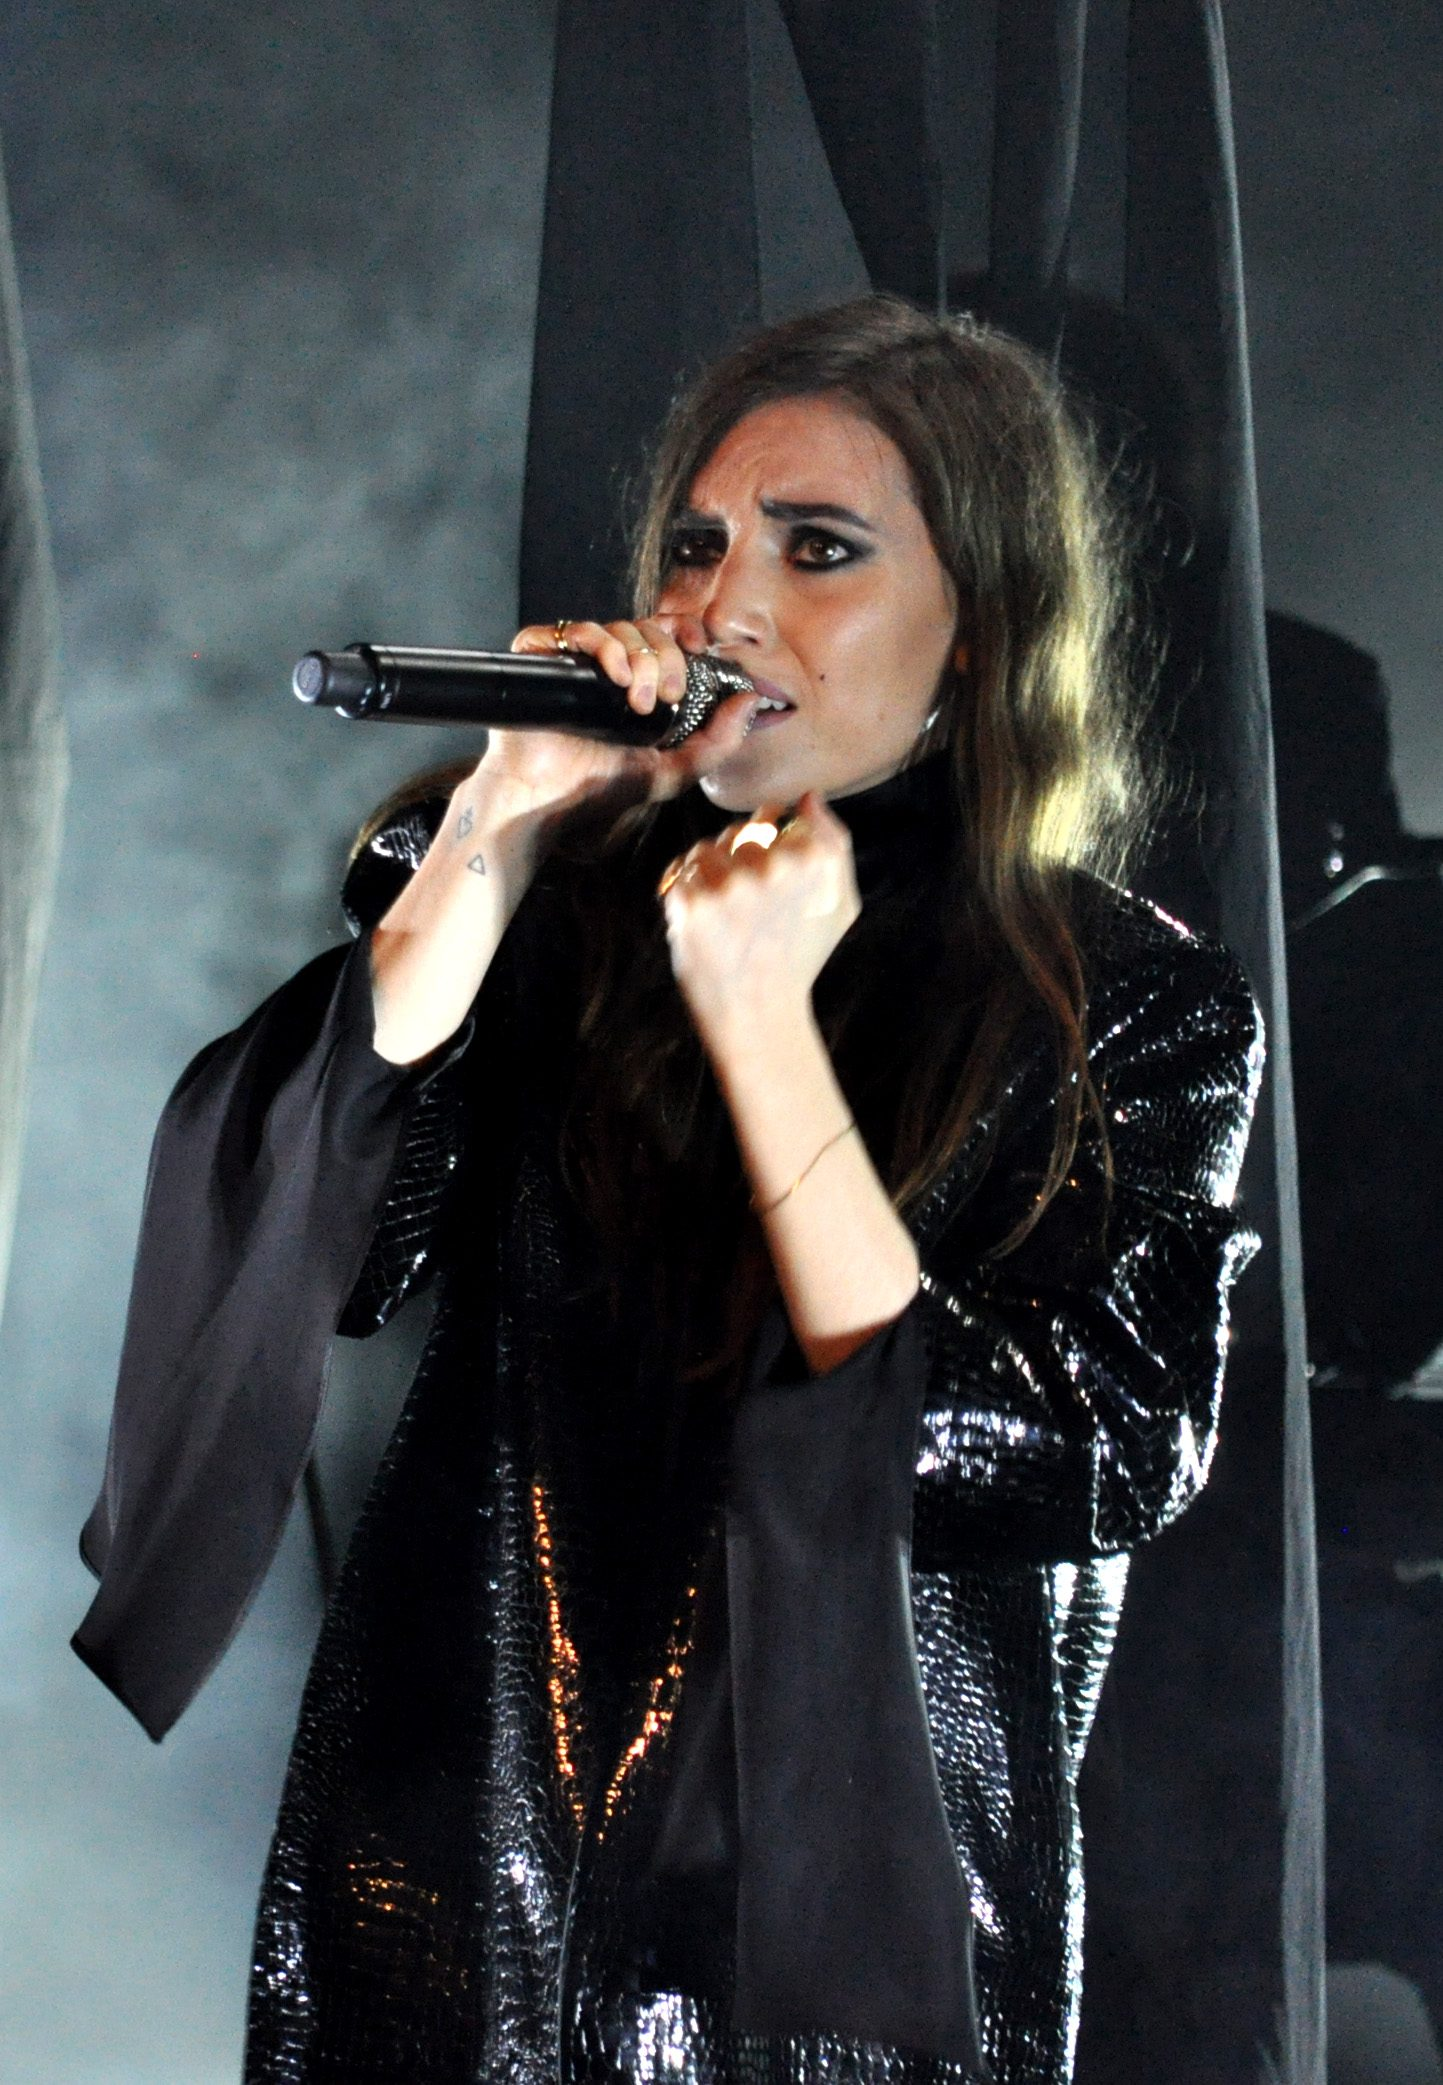 """Lykke Li Performs New Song """"Neon"""" at Women Who Rock and Announces New EP Titled still sad, still sexy"""